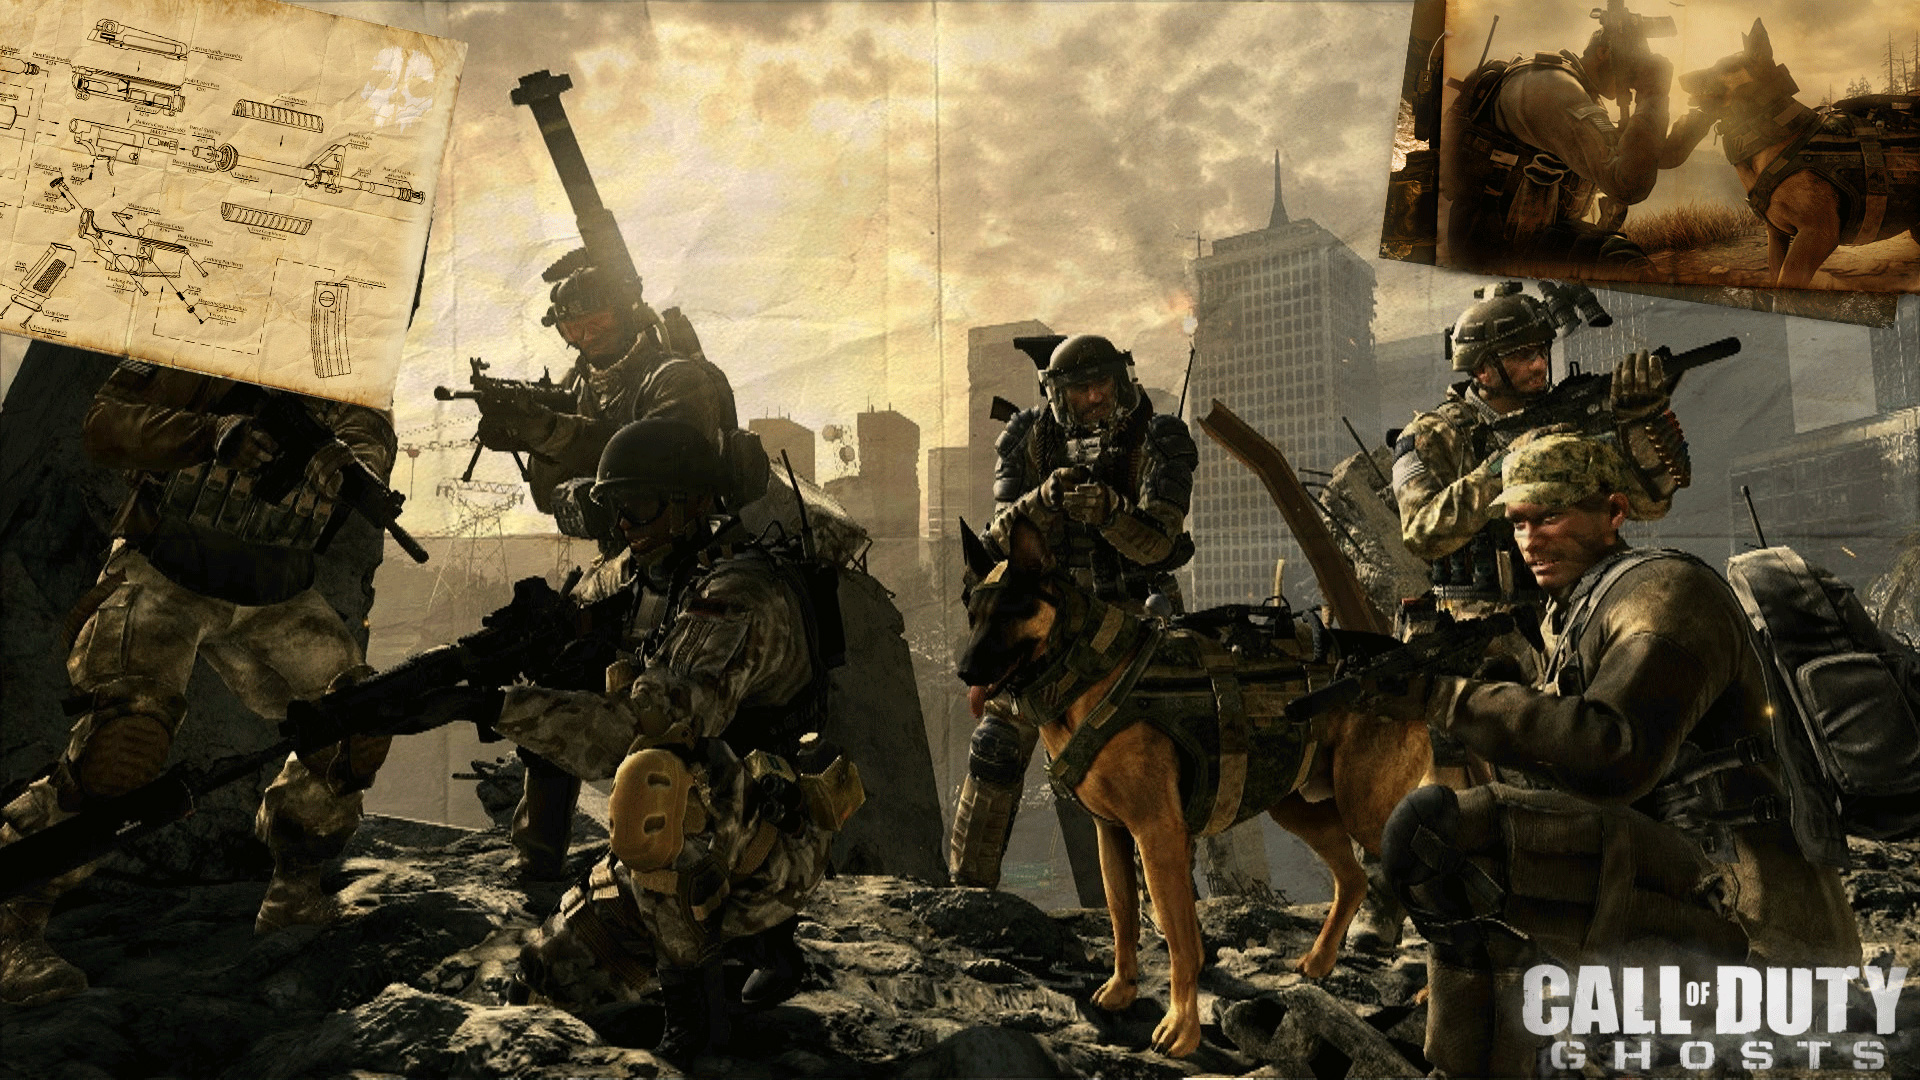 Call Of Duty Ghosts Elite Cod Ghosts Gaming News HD Wallpapers Download Free Images Wallpaper [1000image.com]